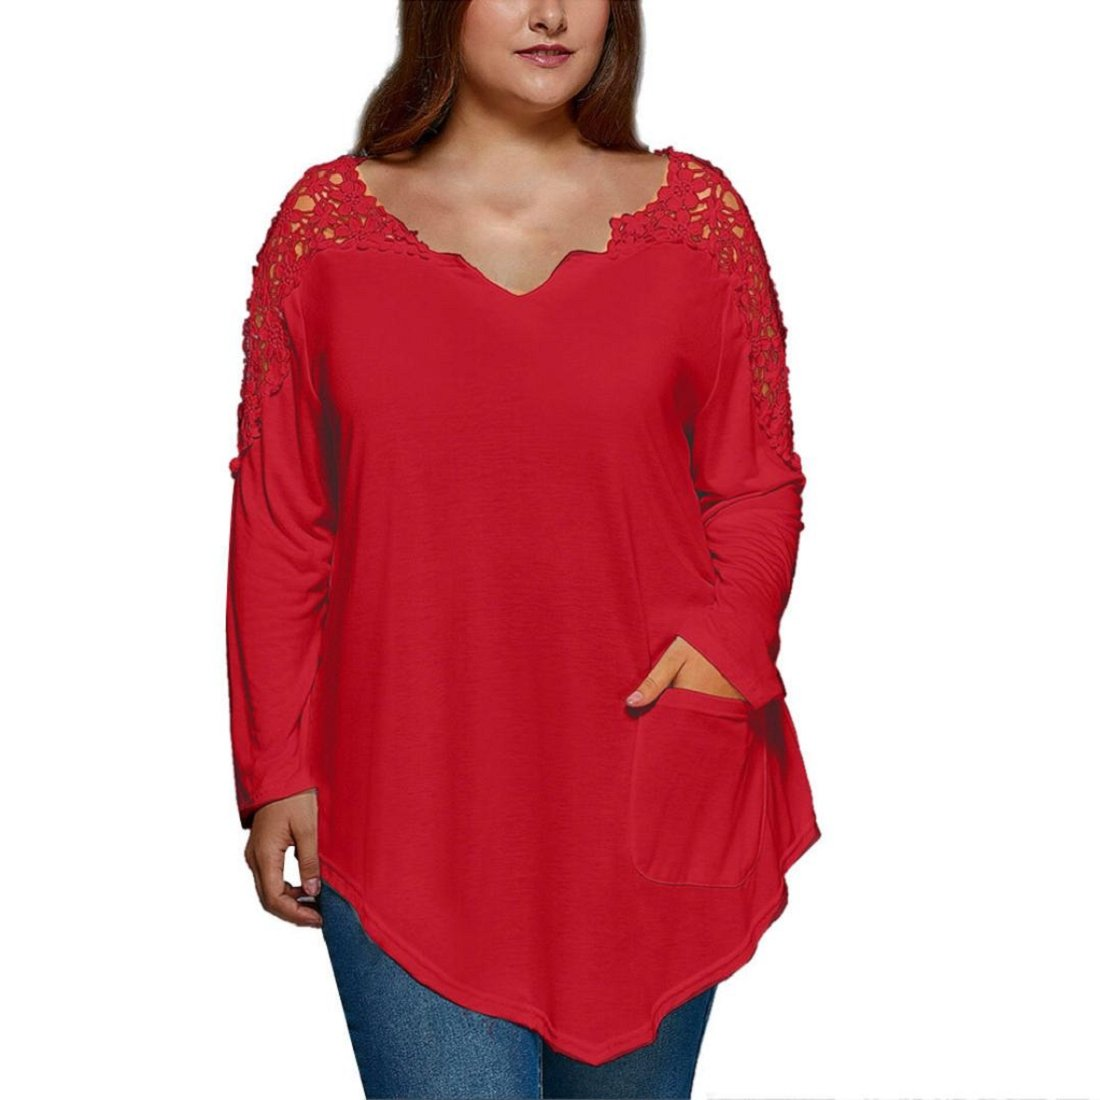 GONKOMA Clearance Women's Plus Size Blouse Lady Fashion Lace Long Sleeve V-Neck T-Shirt Casual Top Blouse XL-7XL Red-6xl) XWJ520